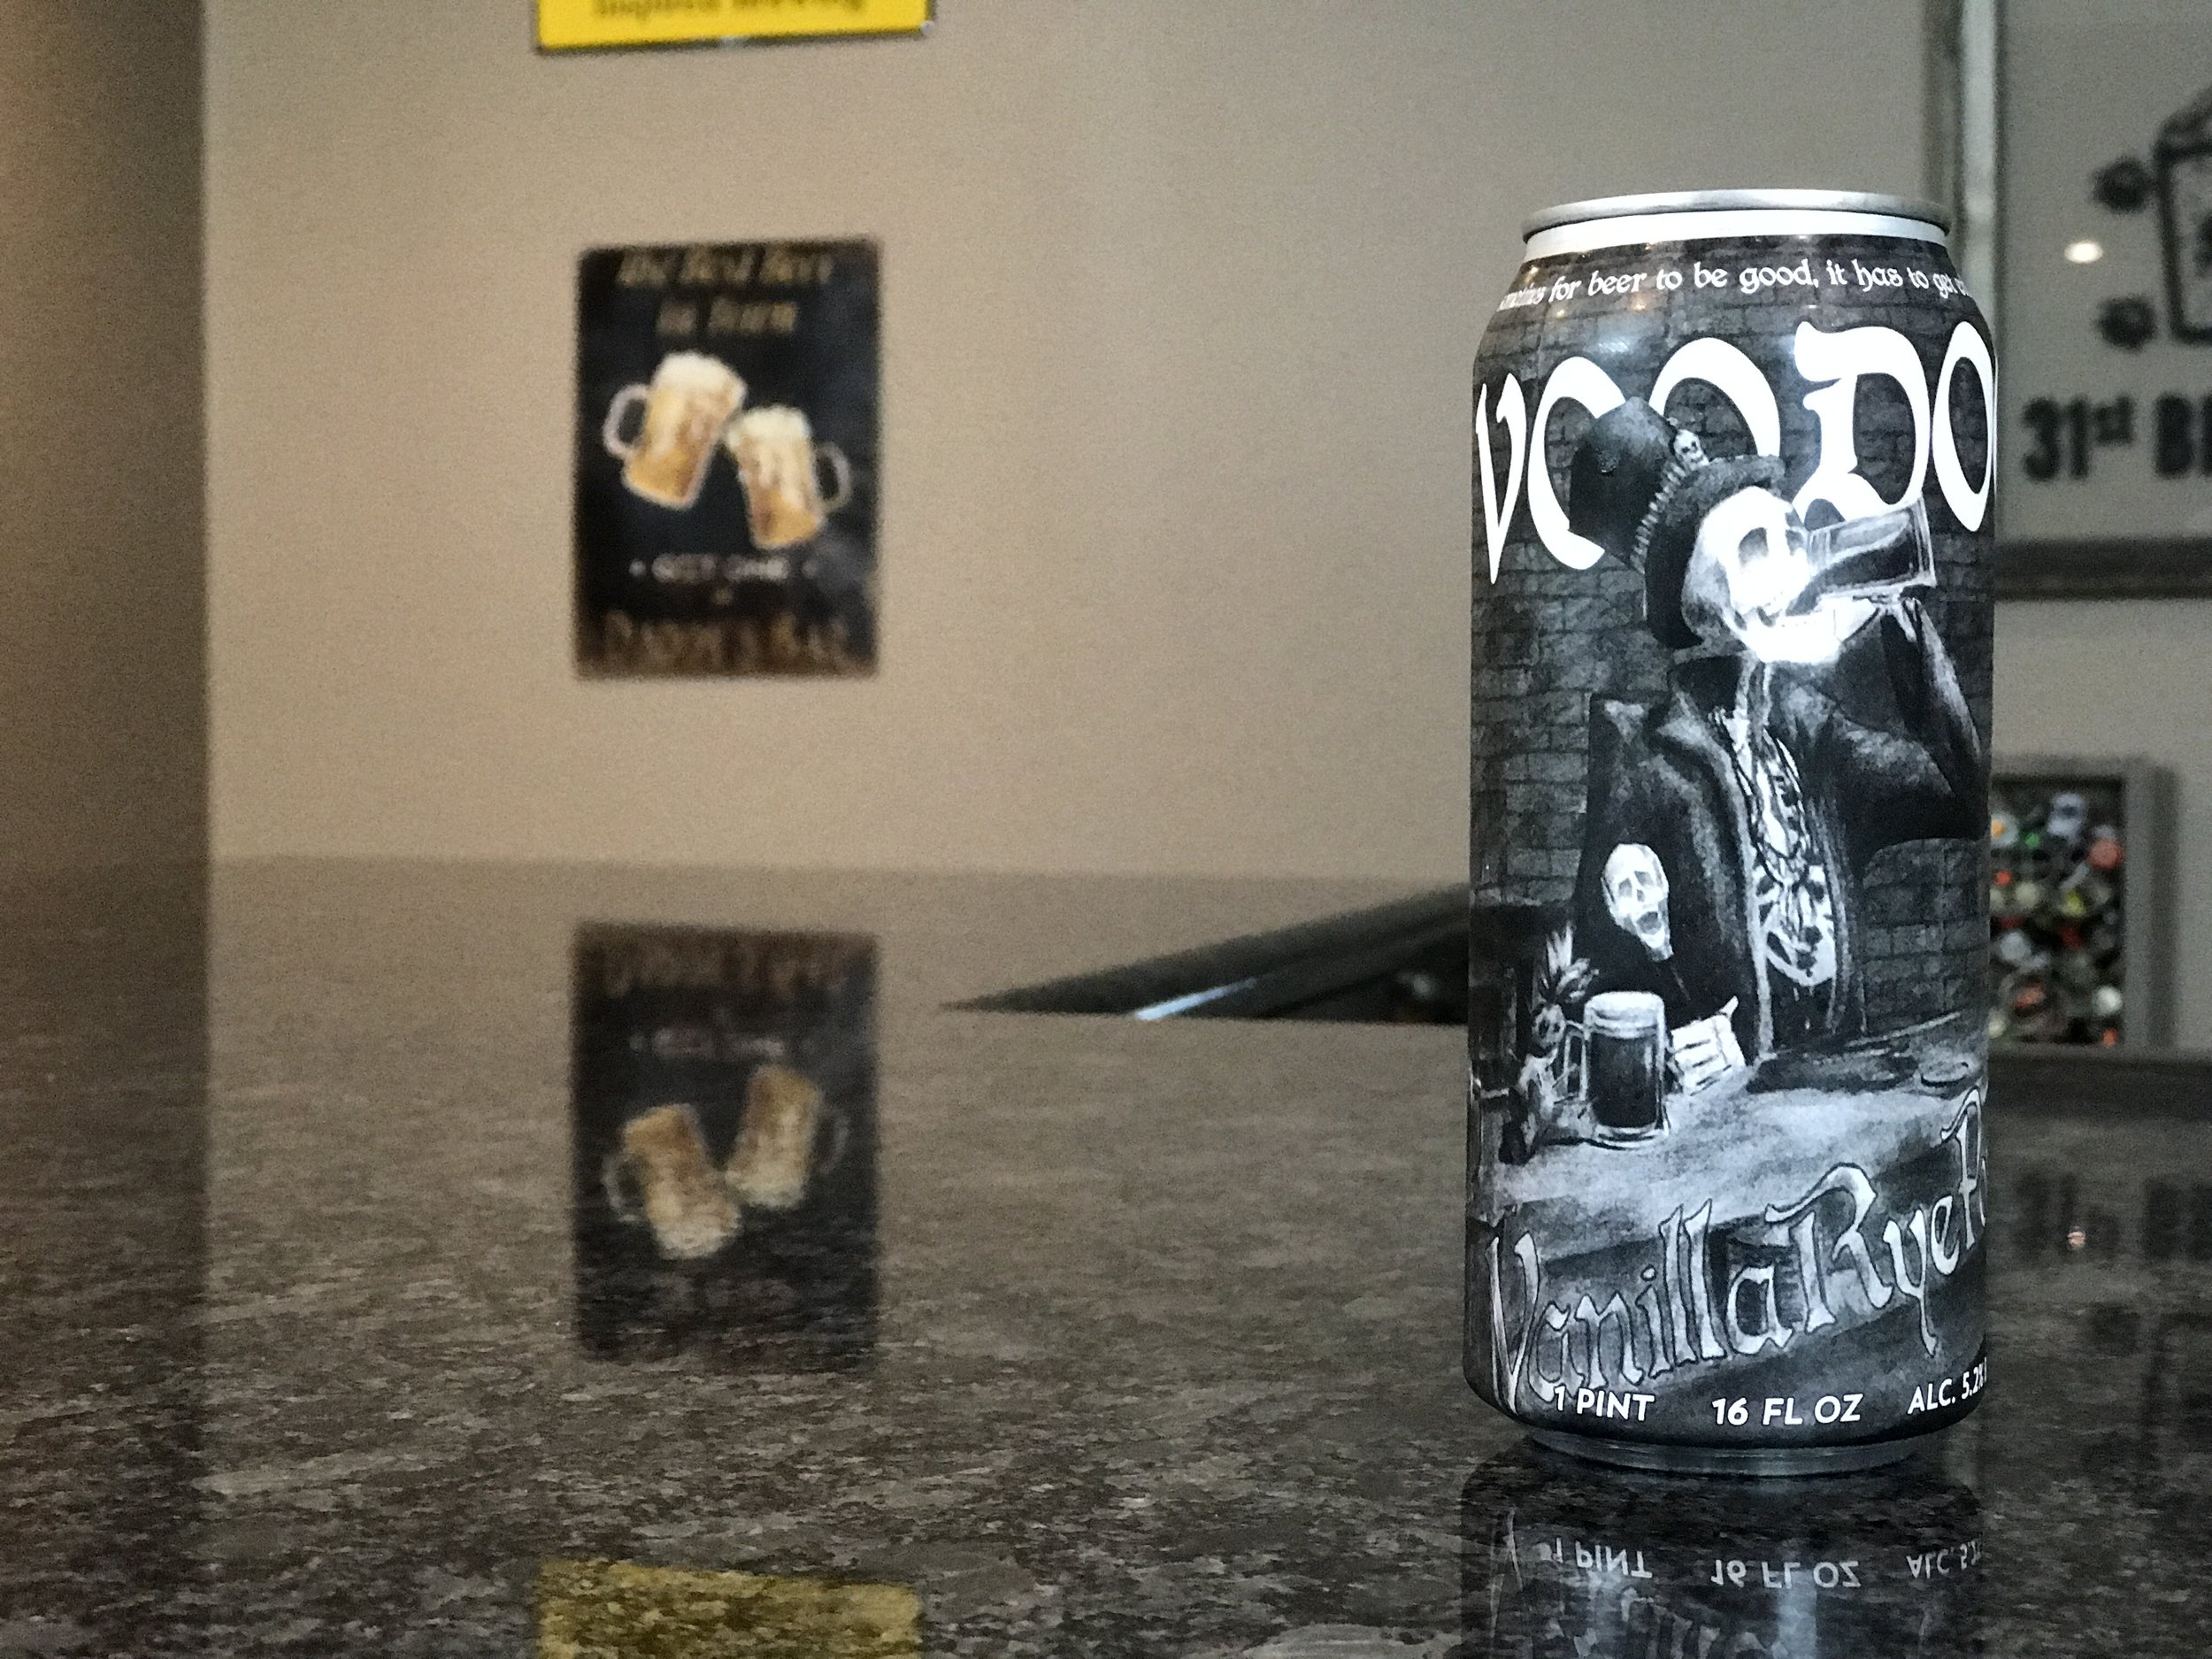 VOODOO VANILLA RYE PORTER 5.2% 30 IBUs - Want to see the Video review? Click on the image.